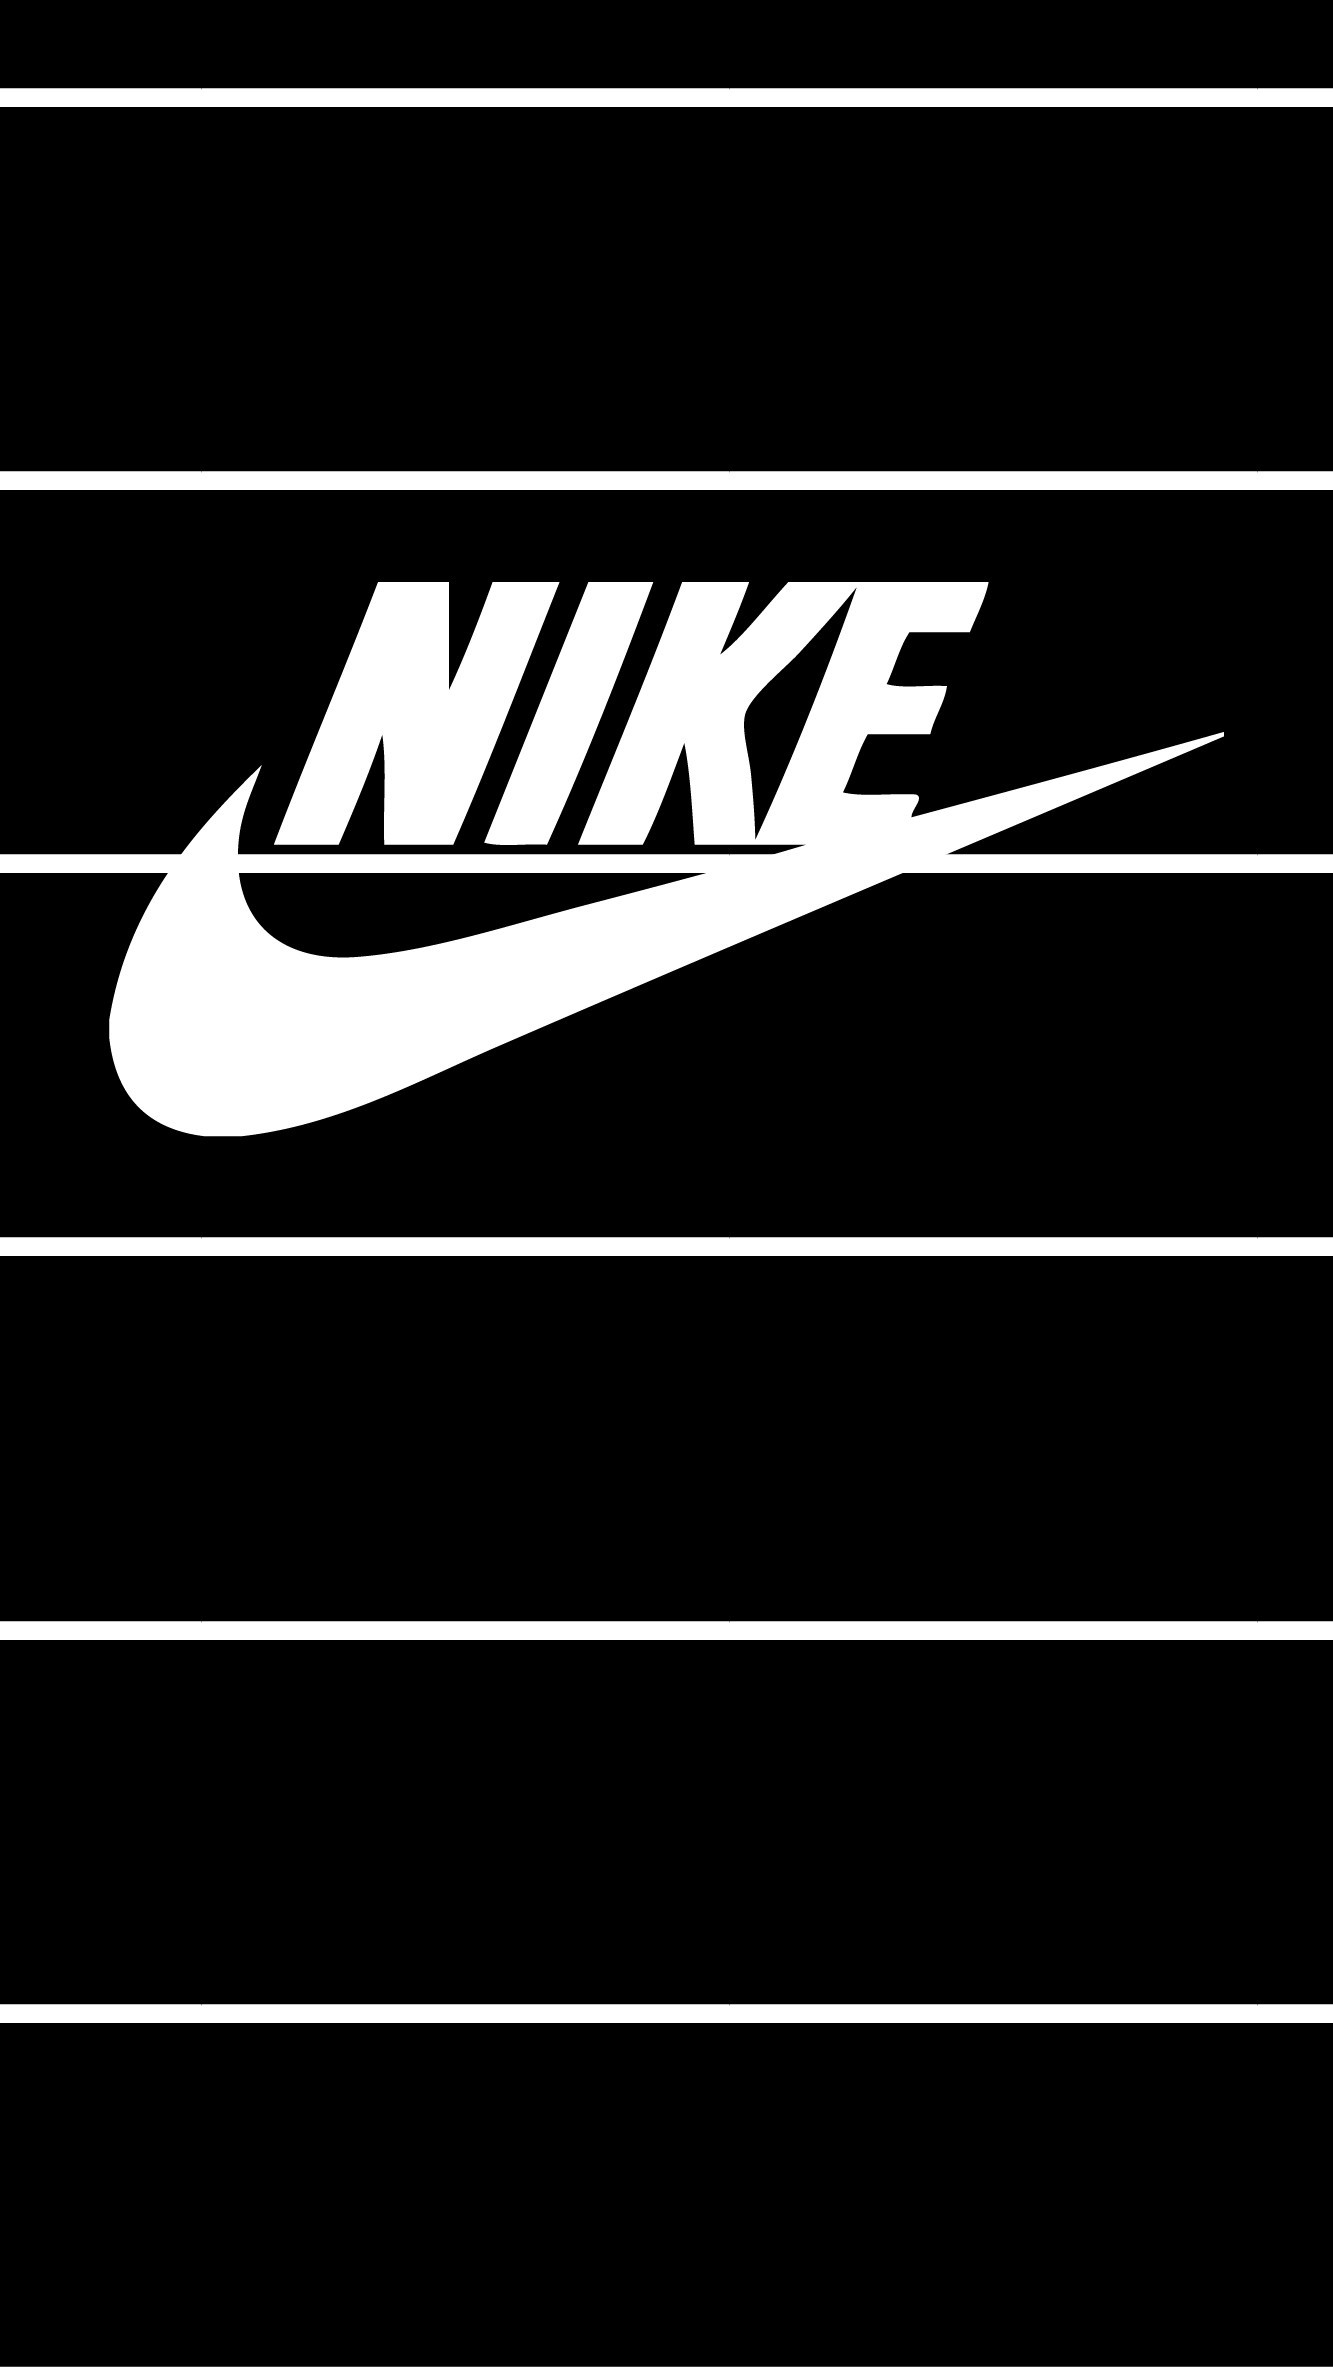 Black Nike Wallpapers 71 Background Pictures